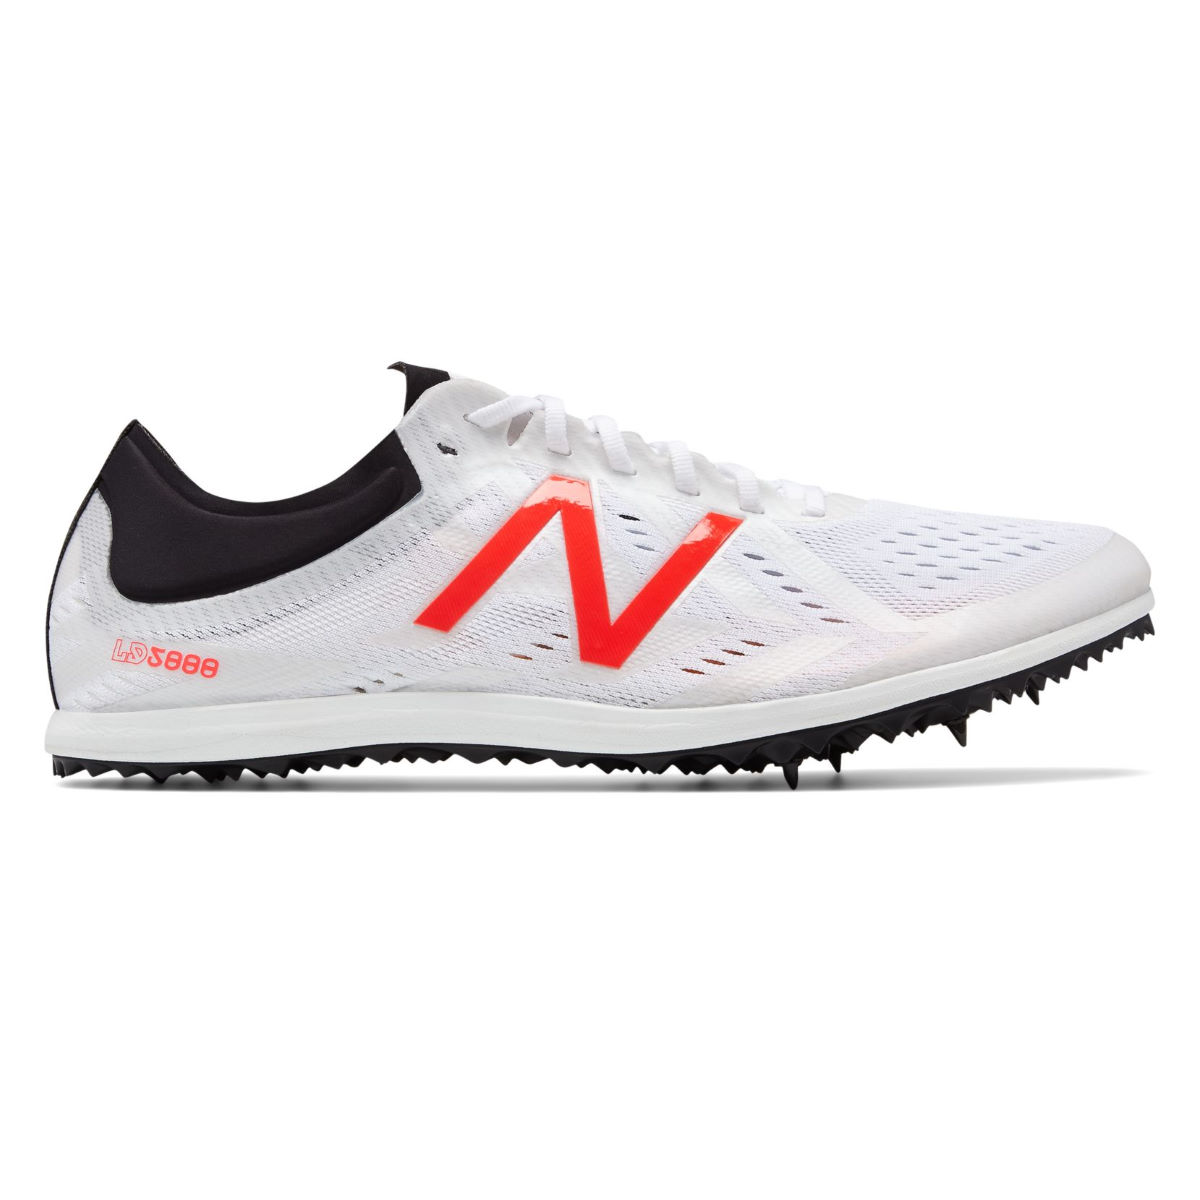 New Balance LD5000 v5 Shoes - Zapatillas de atletismo